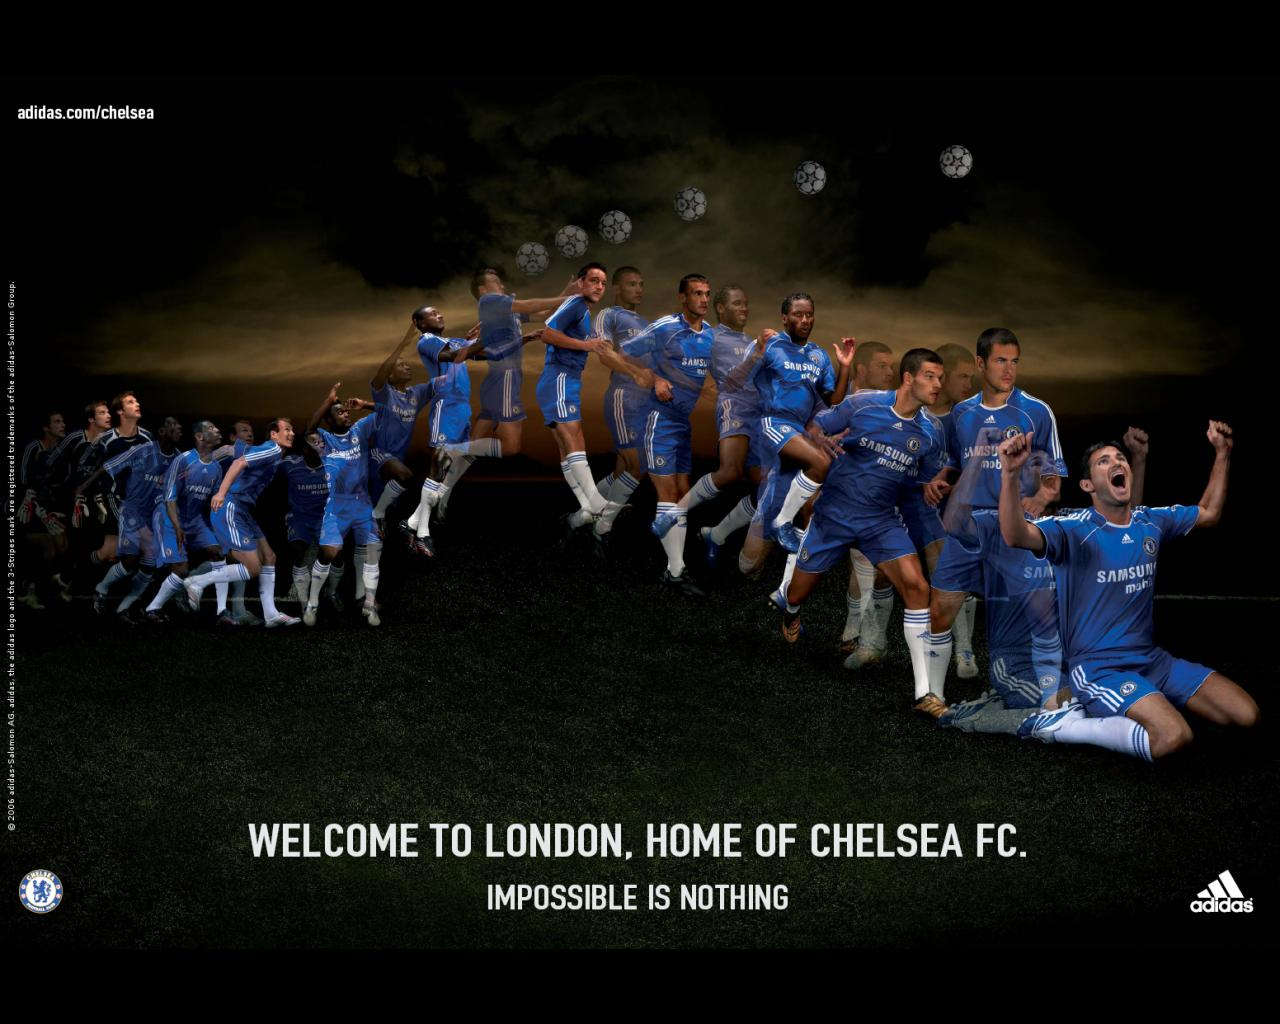 All New Pix1 Chelsea Fc Iphone 4 Wallpaper